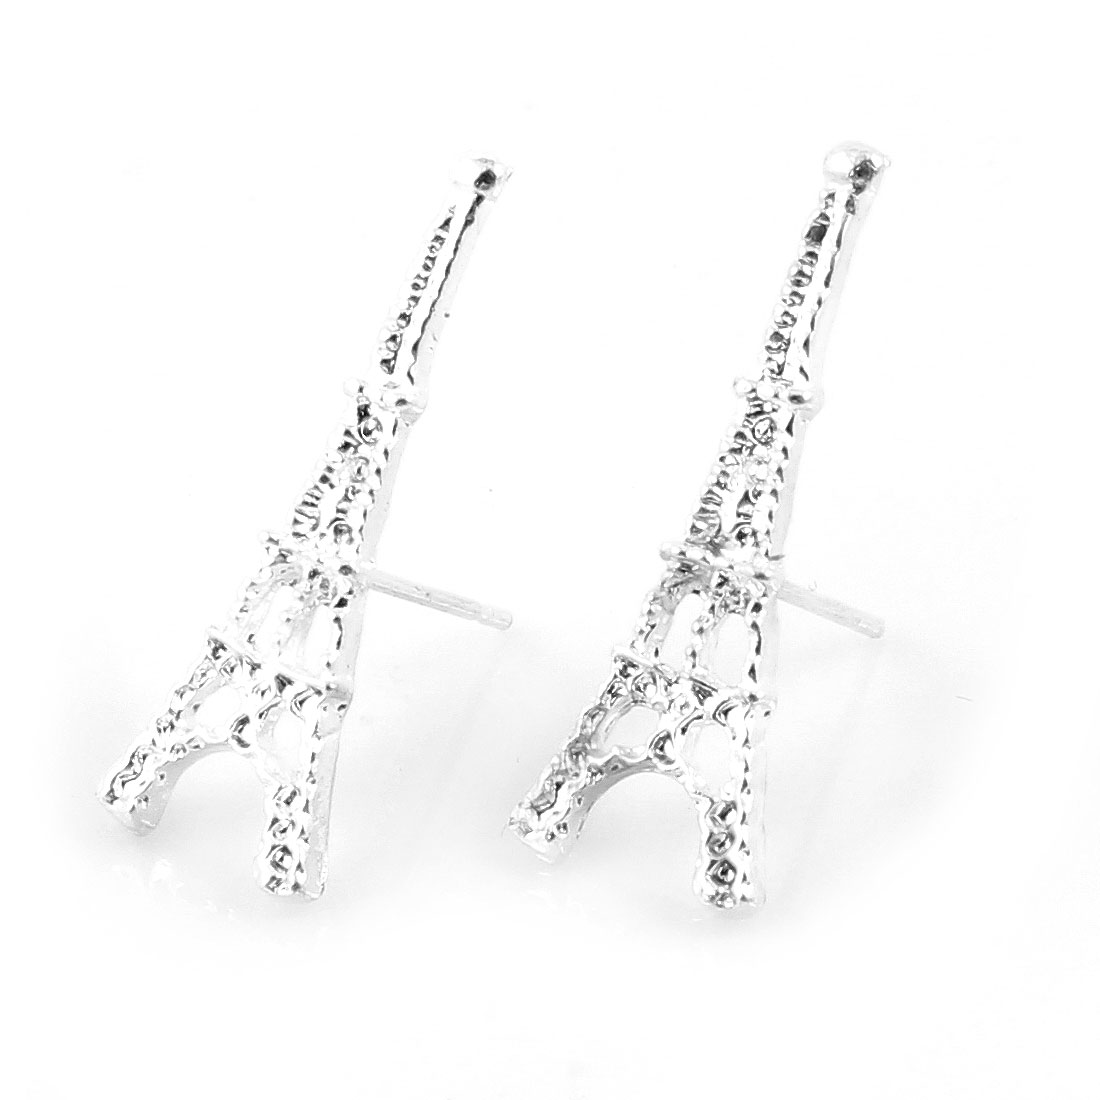 Lady Ear Decor Silver Tone Eiffel Tower Shaped Design Stud Earrings Pair